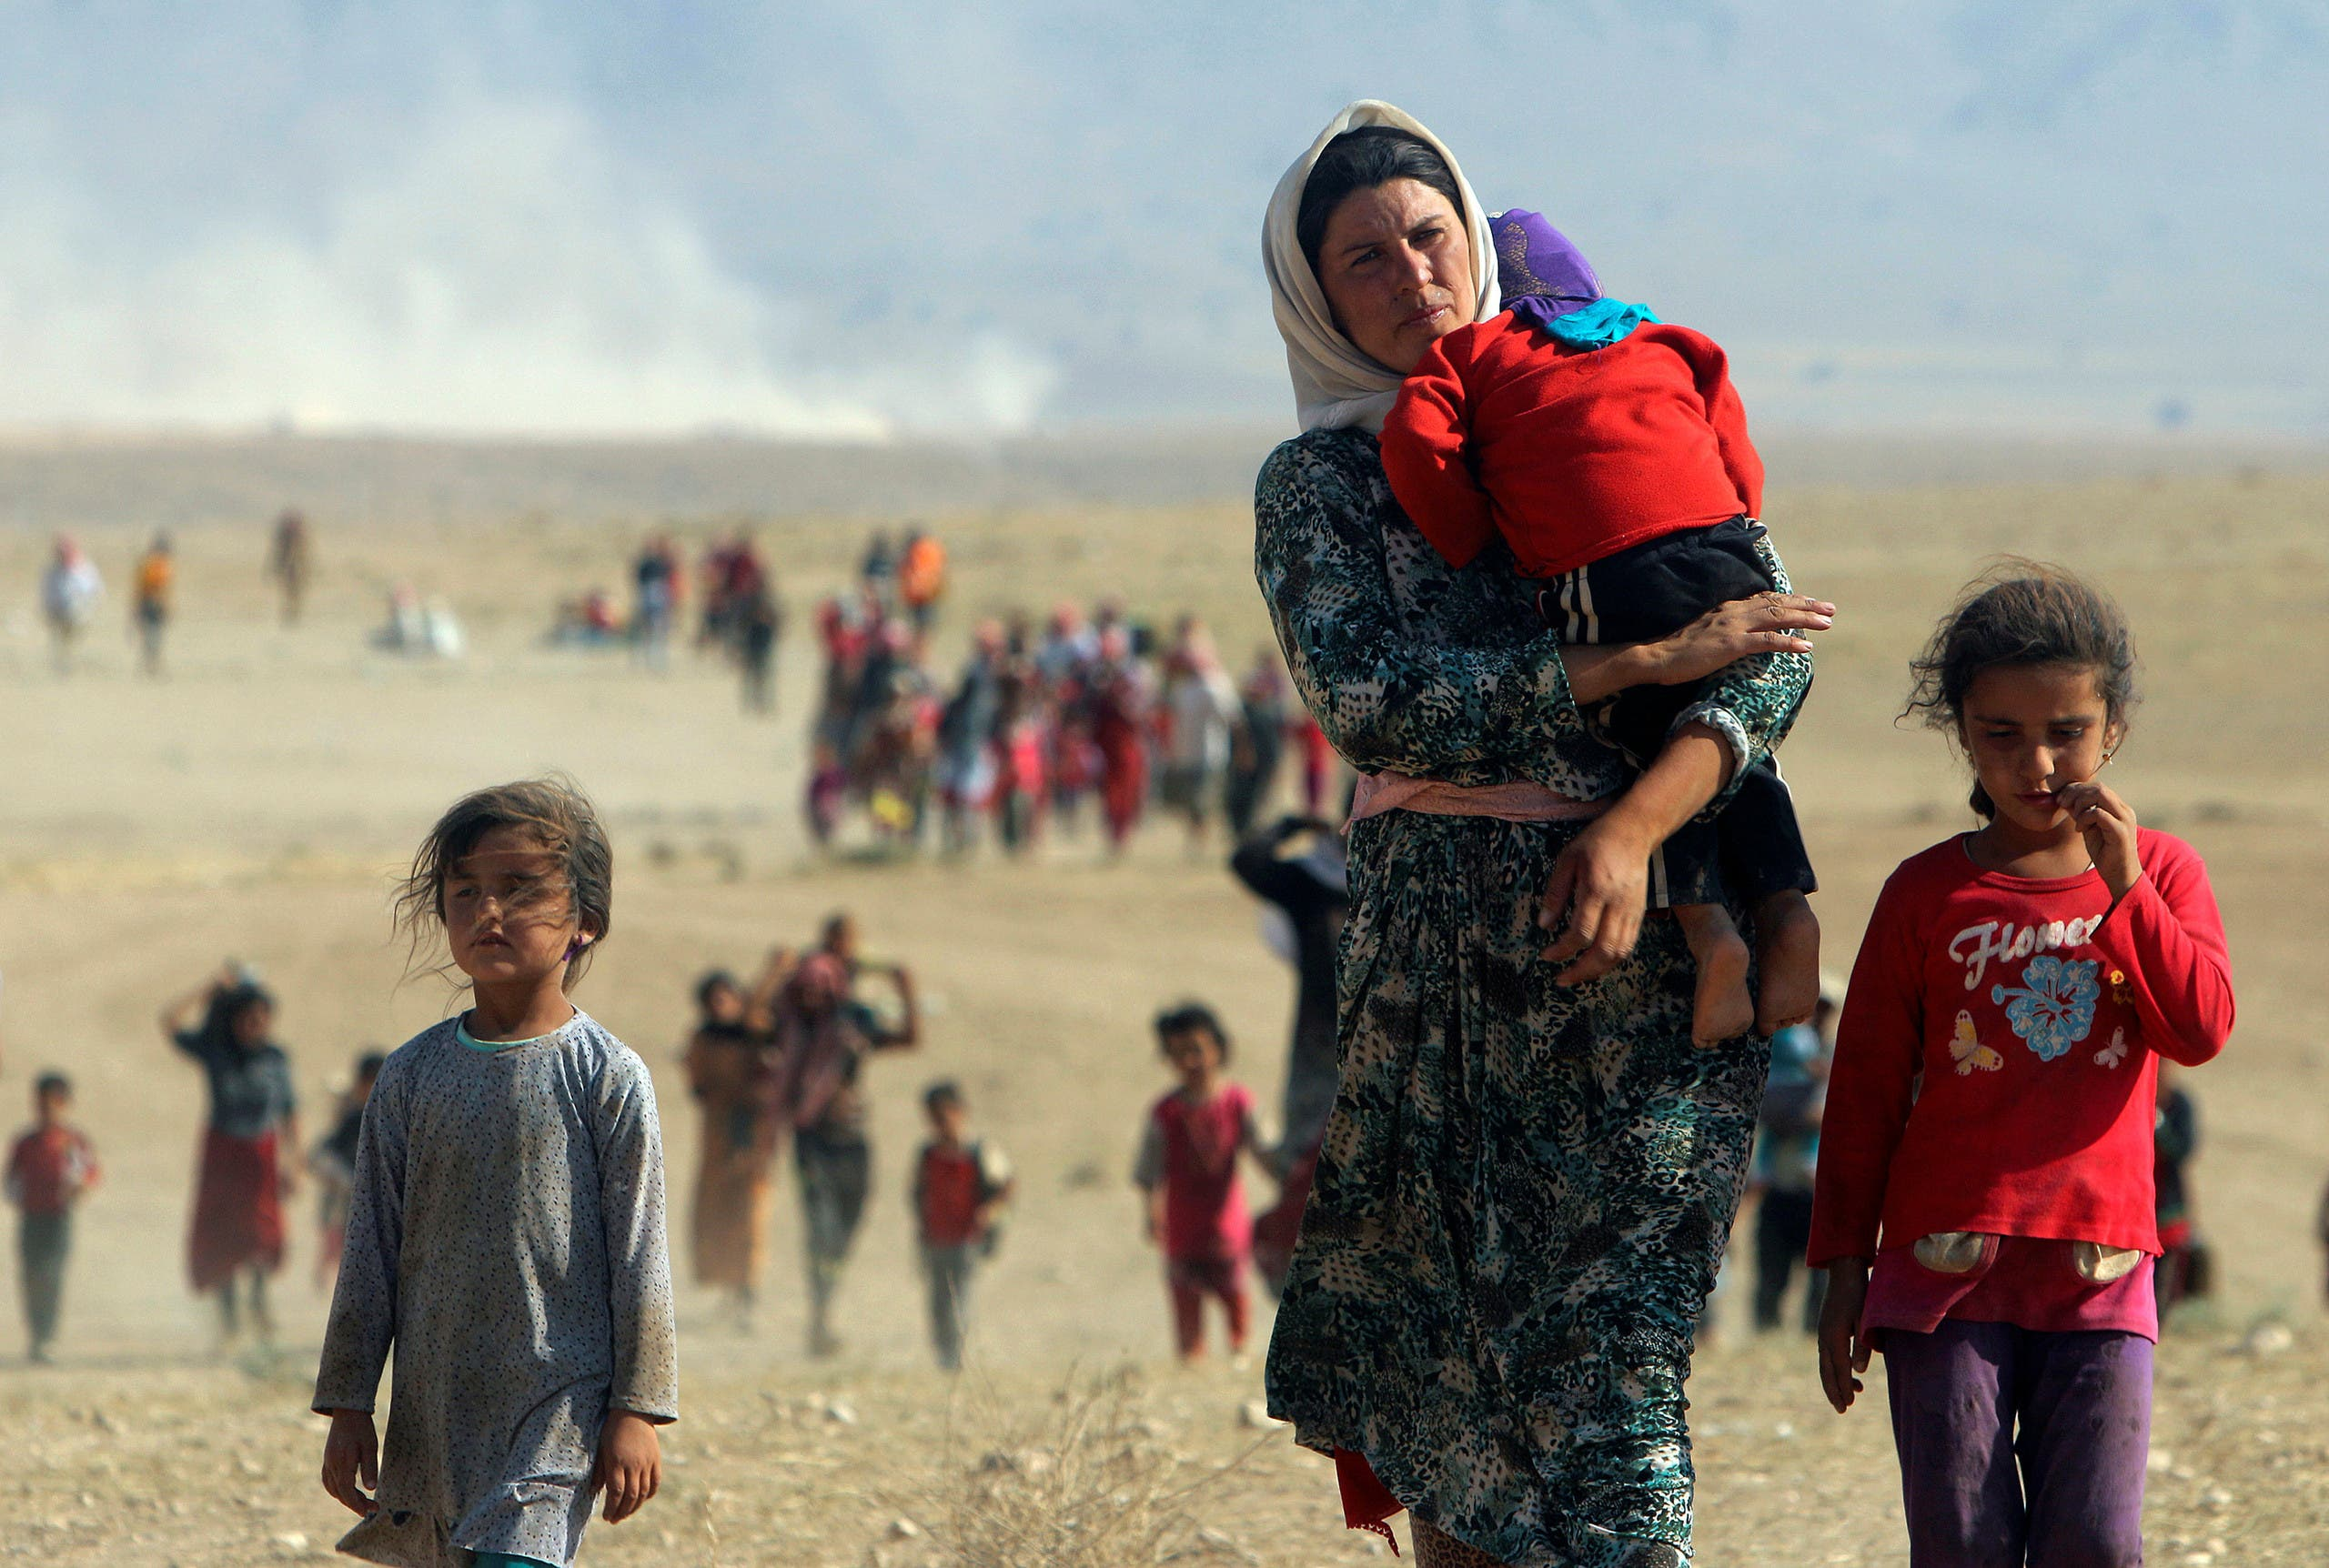 Displaced people from the minority Yazidi sect, fleeing violence from forces loyal to ISIS in Sinjar town, walk towards the Syrian border on the outskirts of Sinjar mountain near the Syrian border town of Elierbeh of Al-Hasakah Governorate in this August 11, 2014. (File photo: Reuters)